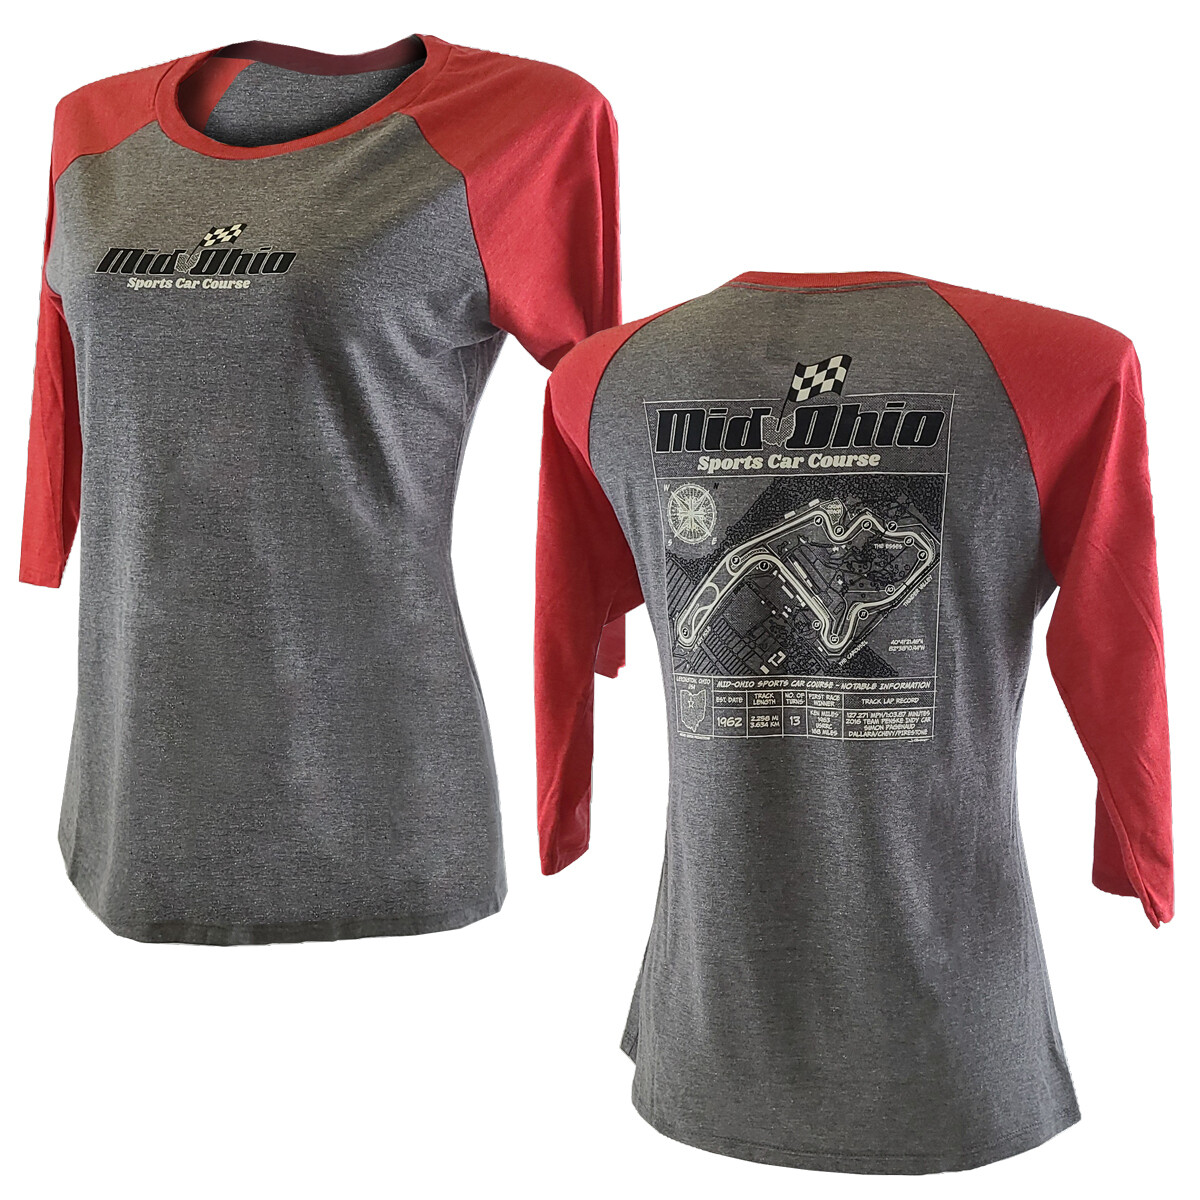 MO Ladies 3/4 Slv T -Grey/Red